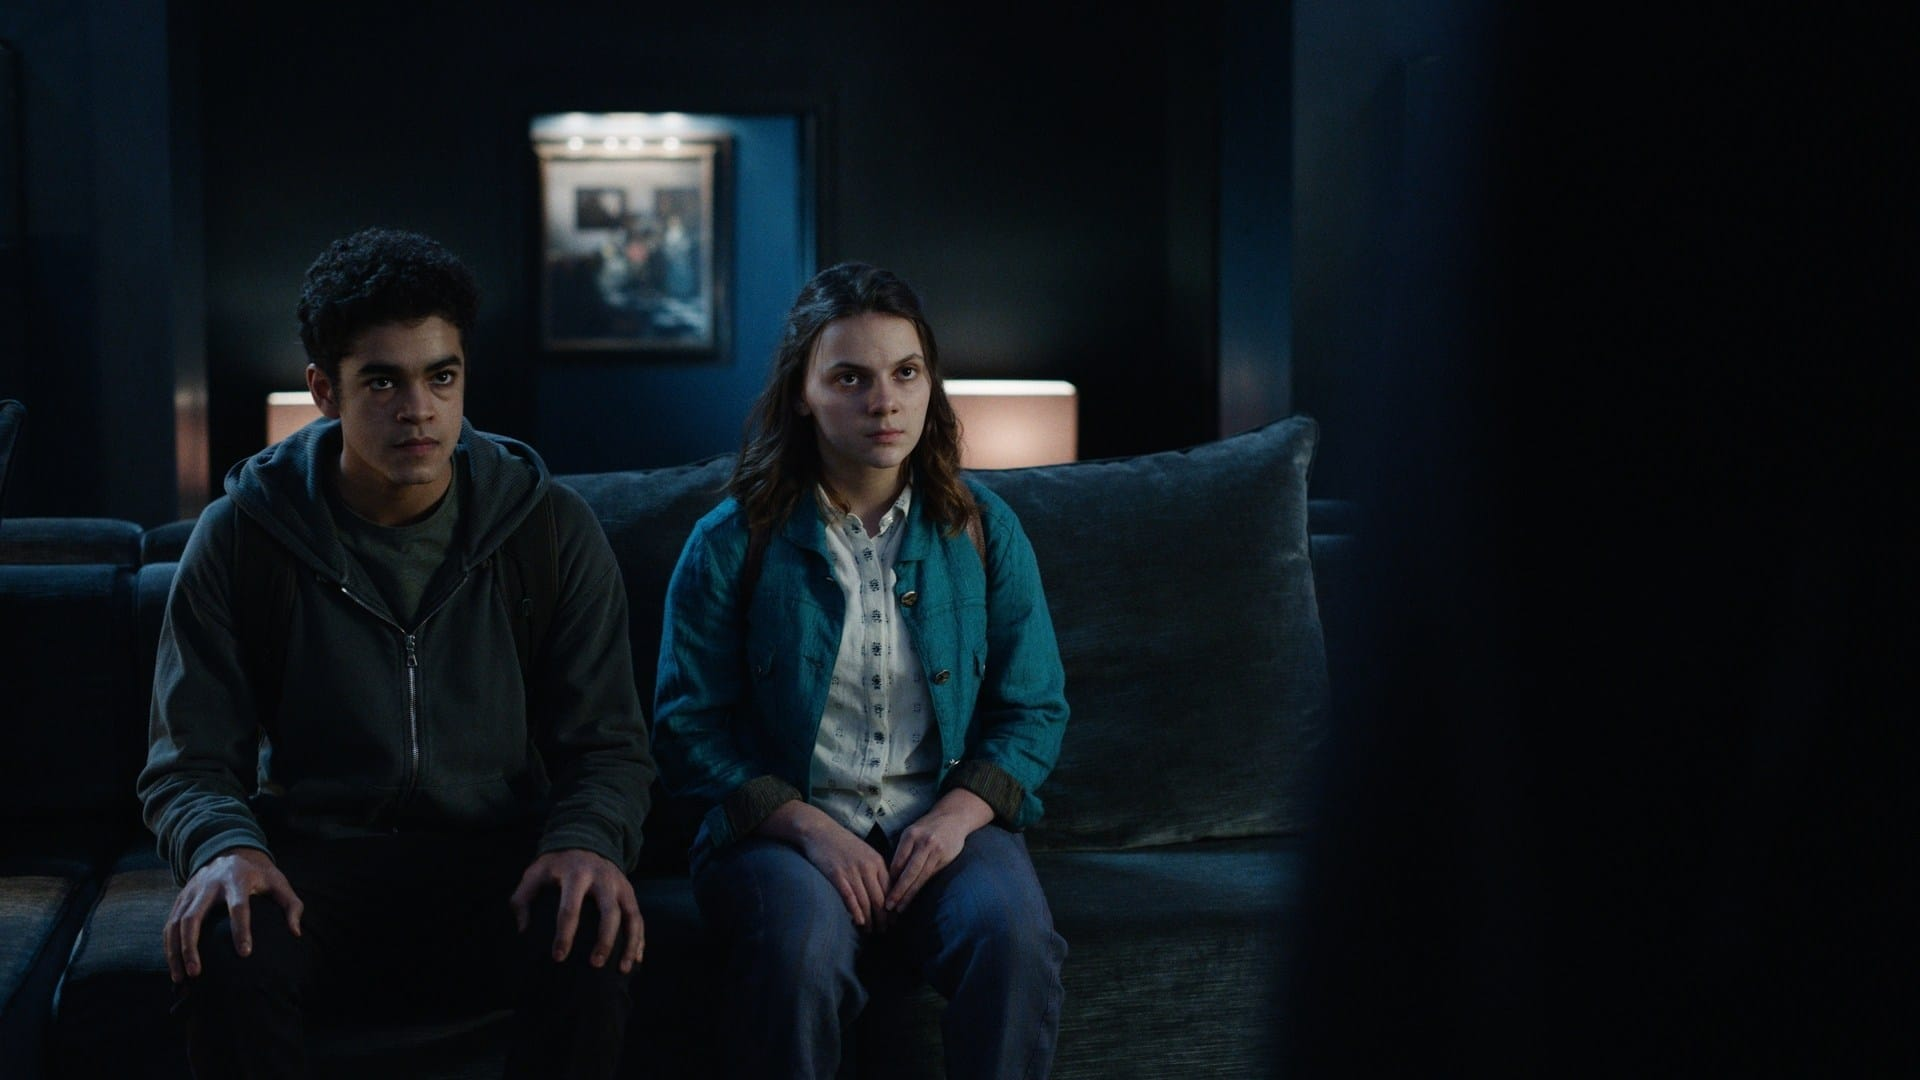 Amir Wilson as Will Parry and Dafne Keen as Lyra Belacqua in His Dark Materials season 2